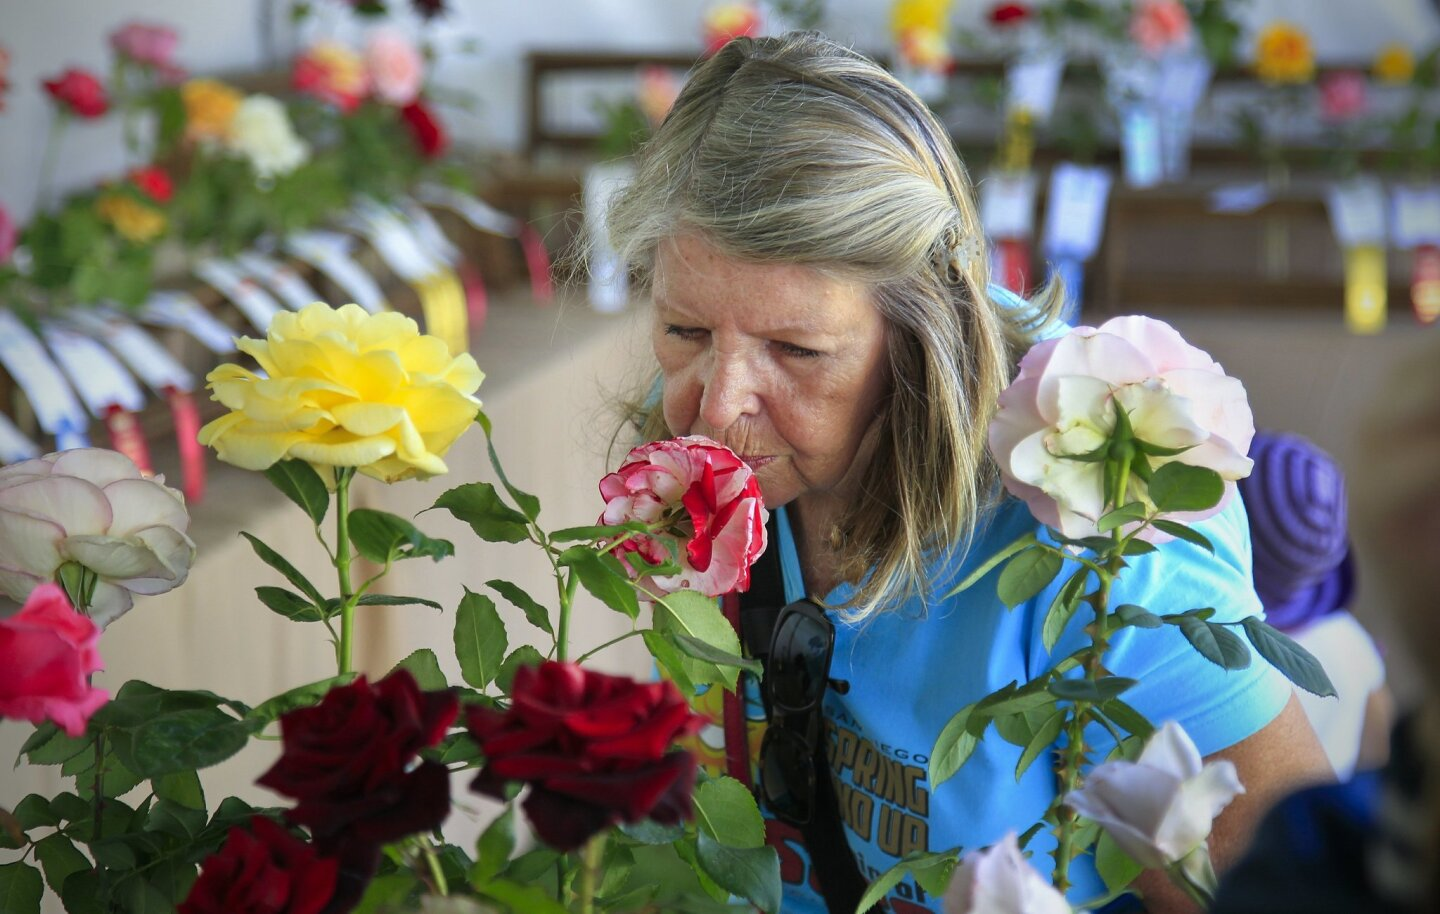 Reena Kaplowitz smells roses on display during the Coronado Flower Show at Spreckels Park.